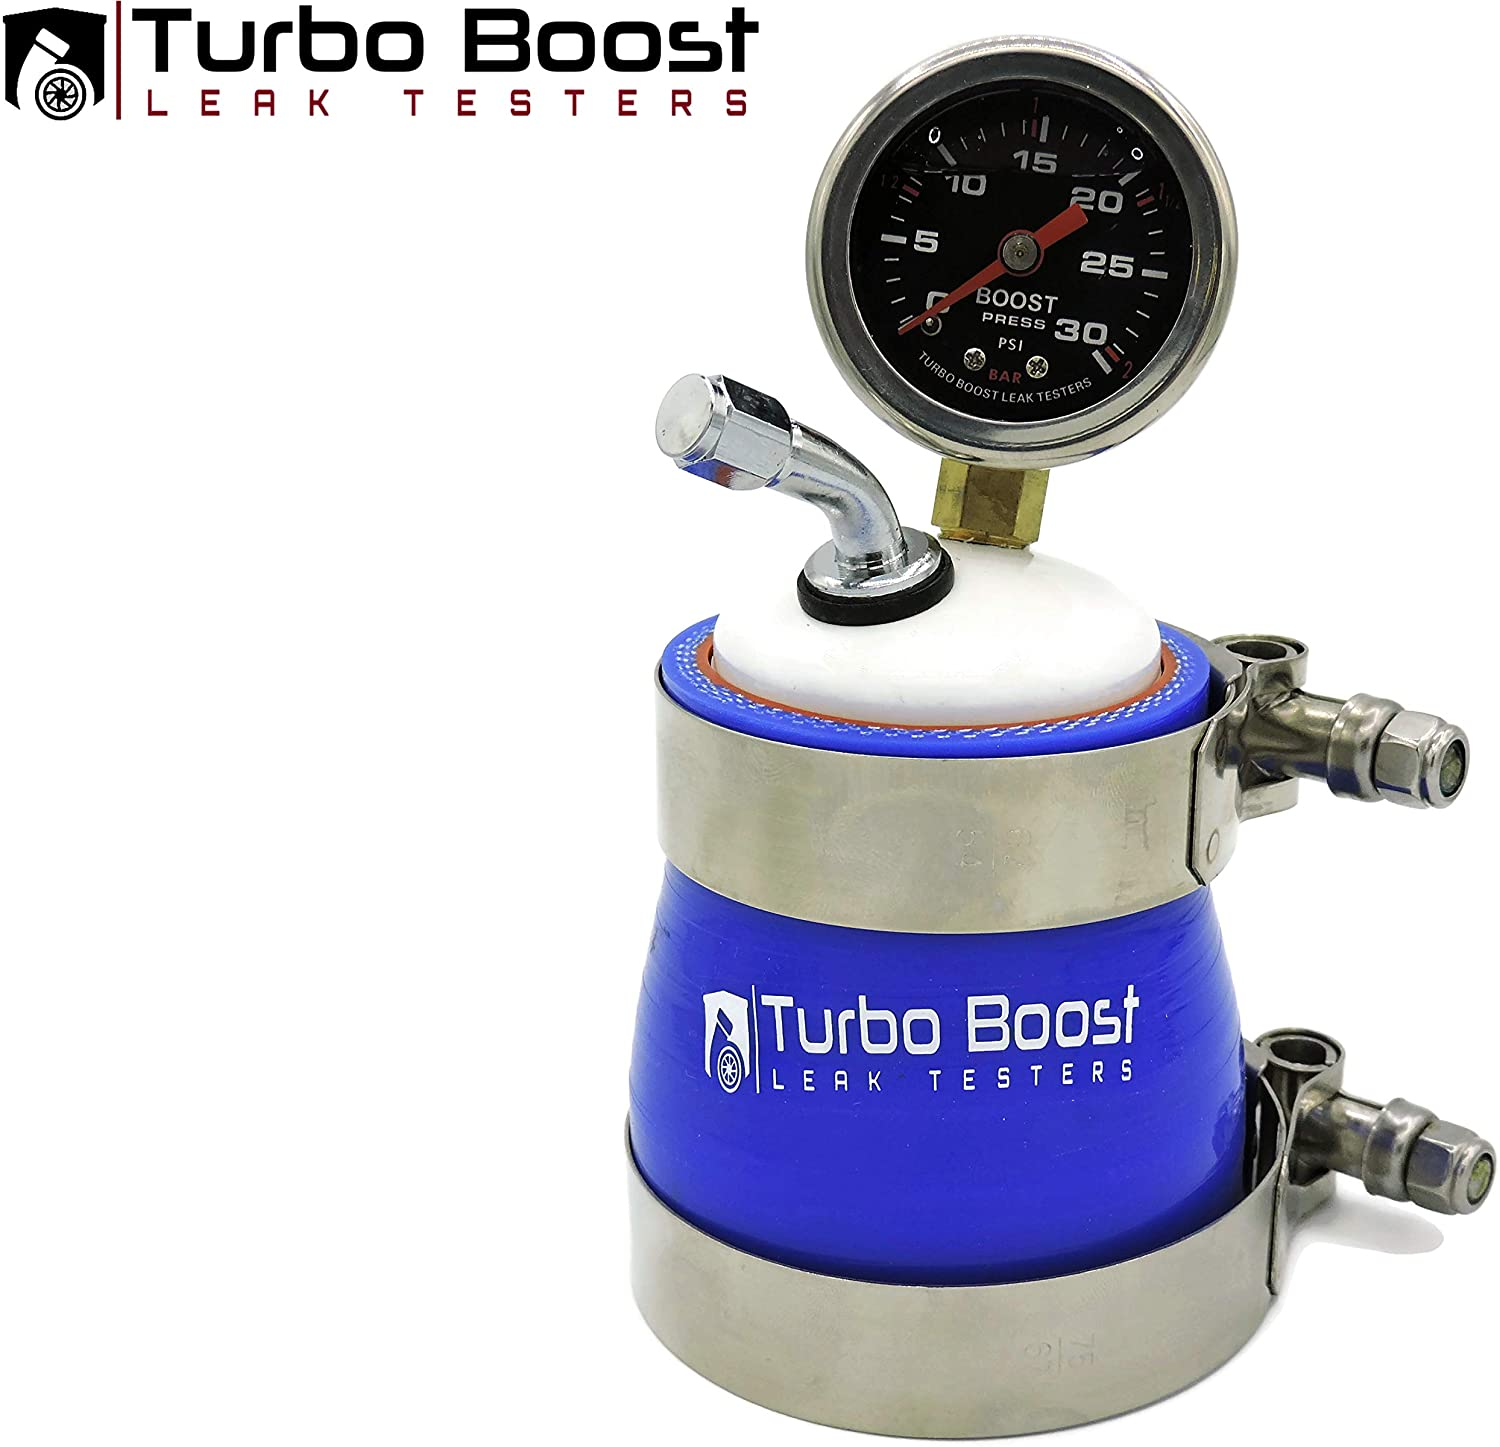 Turbo Boost Leak Testers 2.5 Universal - 30PSI Premium Stainless Steel Gauge - T-Bolt Clamps - Tire Valve Fitting